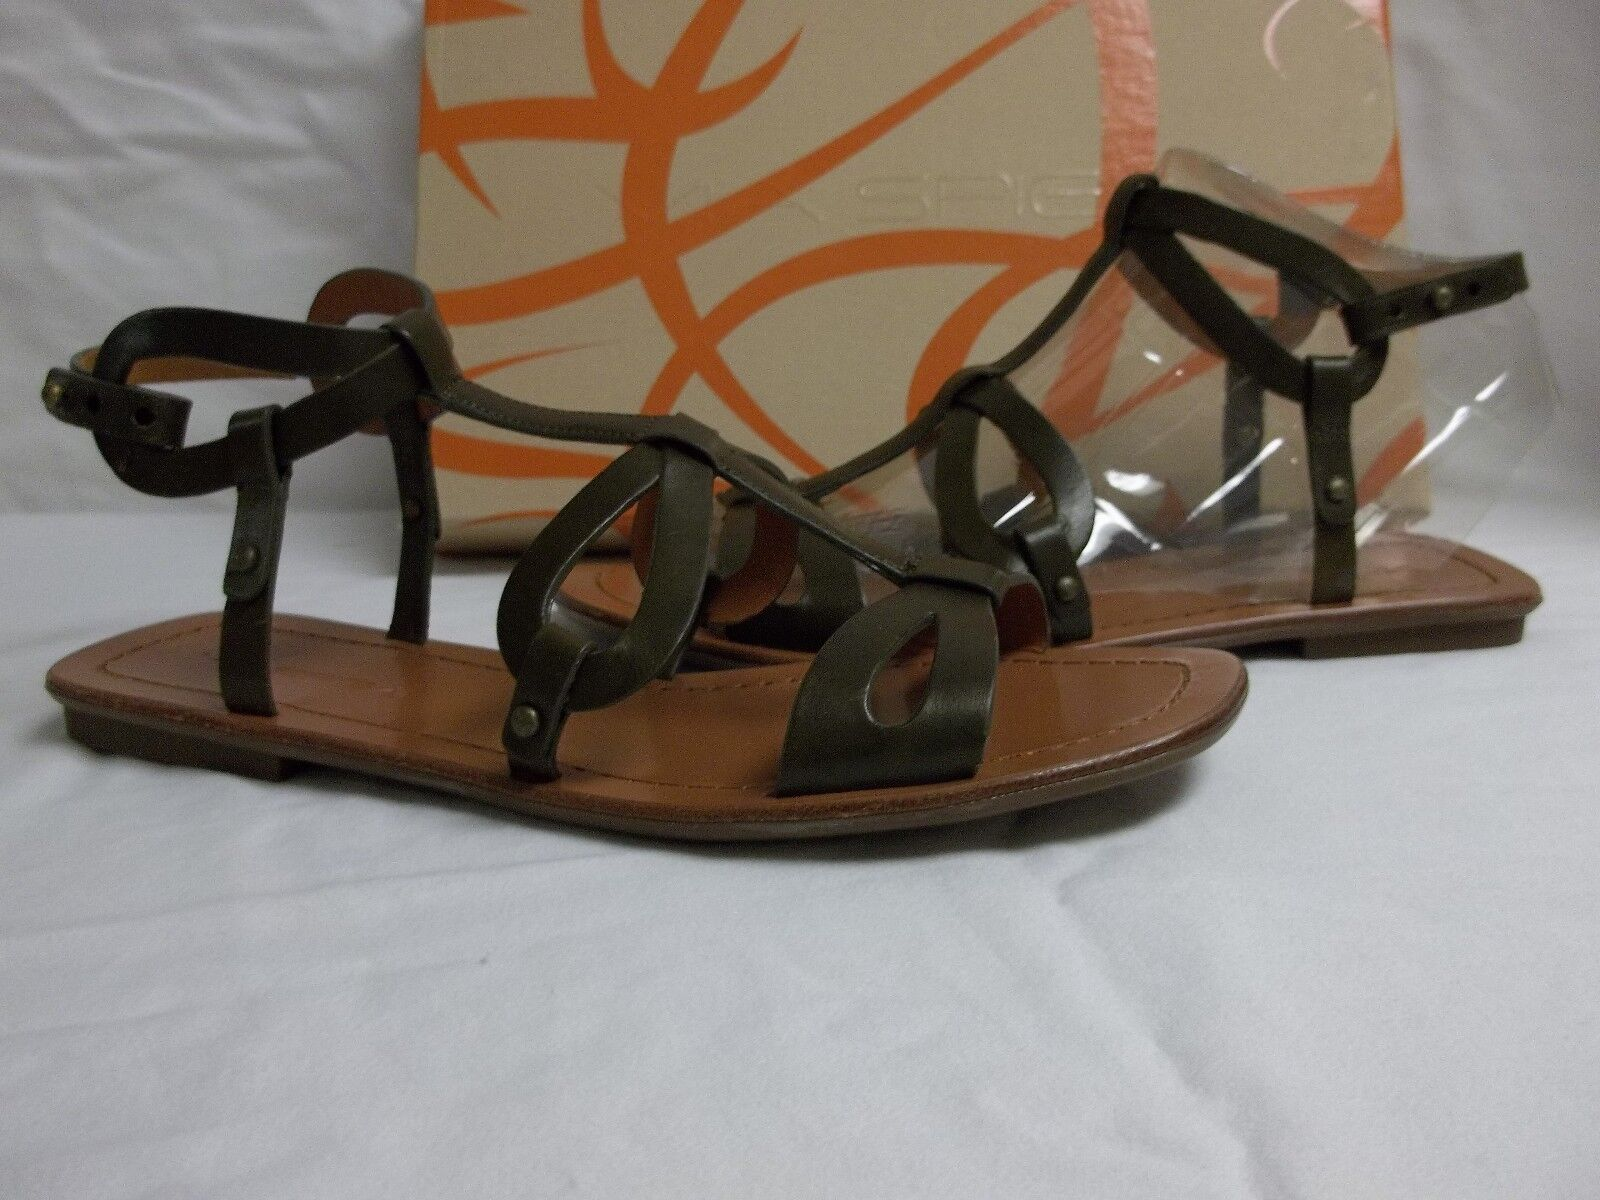 Via Spiga Size 6 M Donnie Dark Olive Leather Gladiator Sandals New Womens shoes